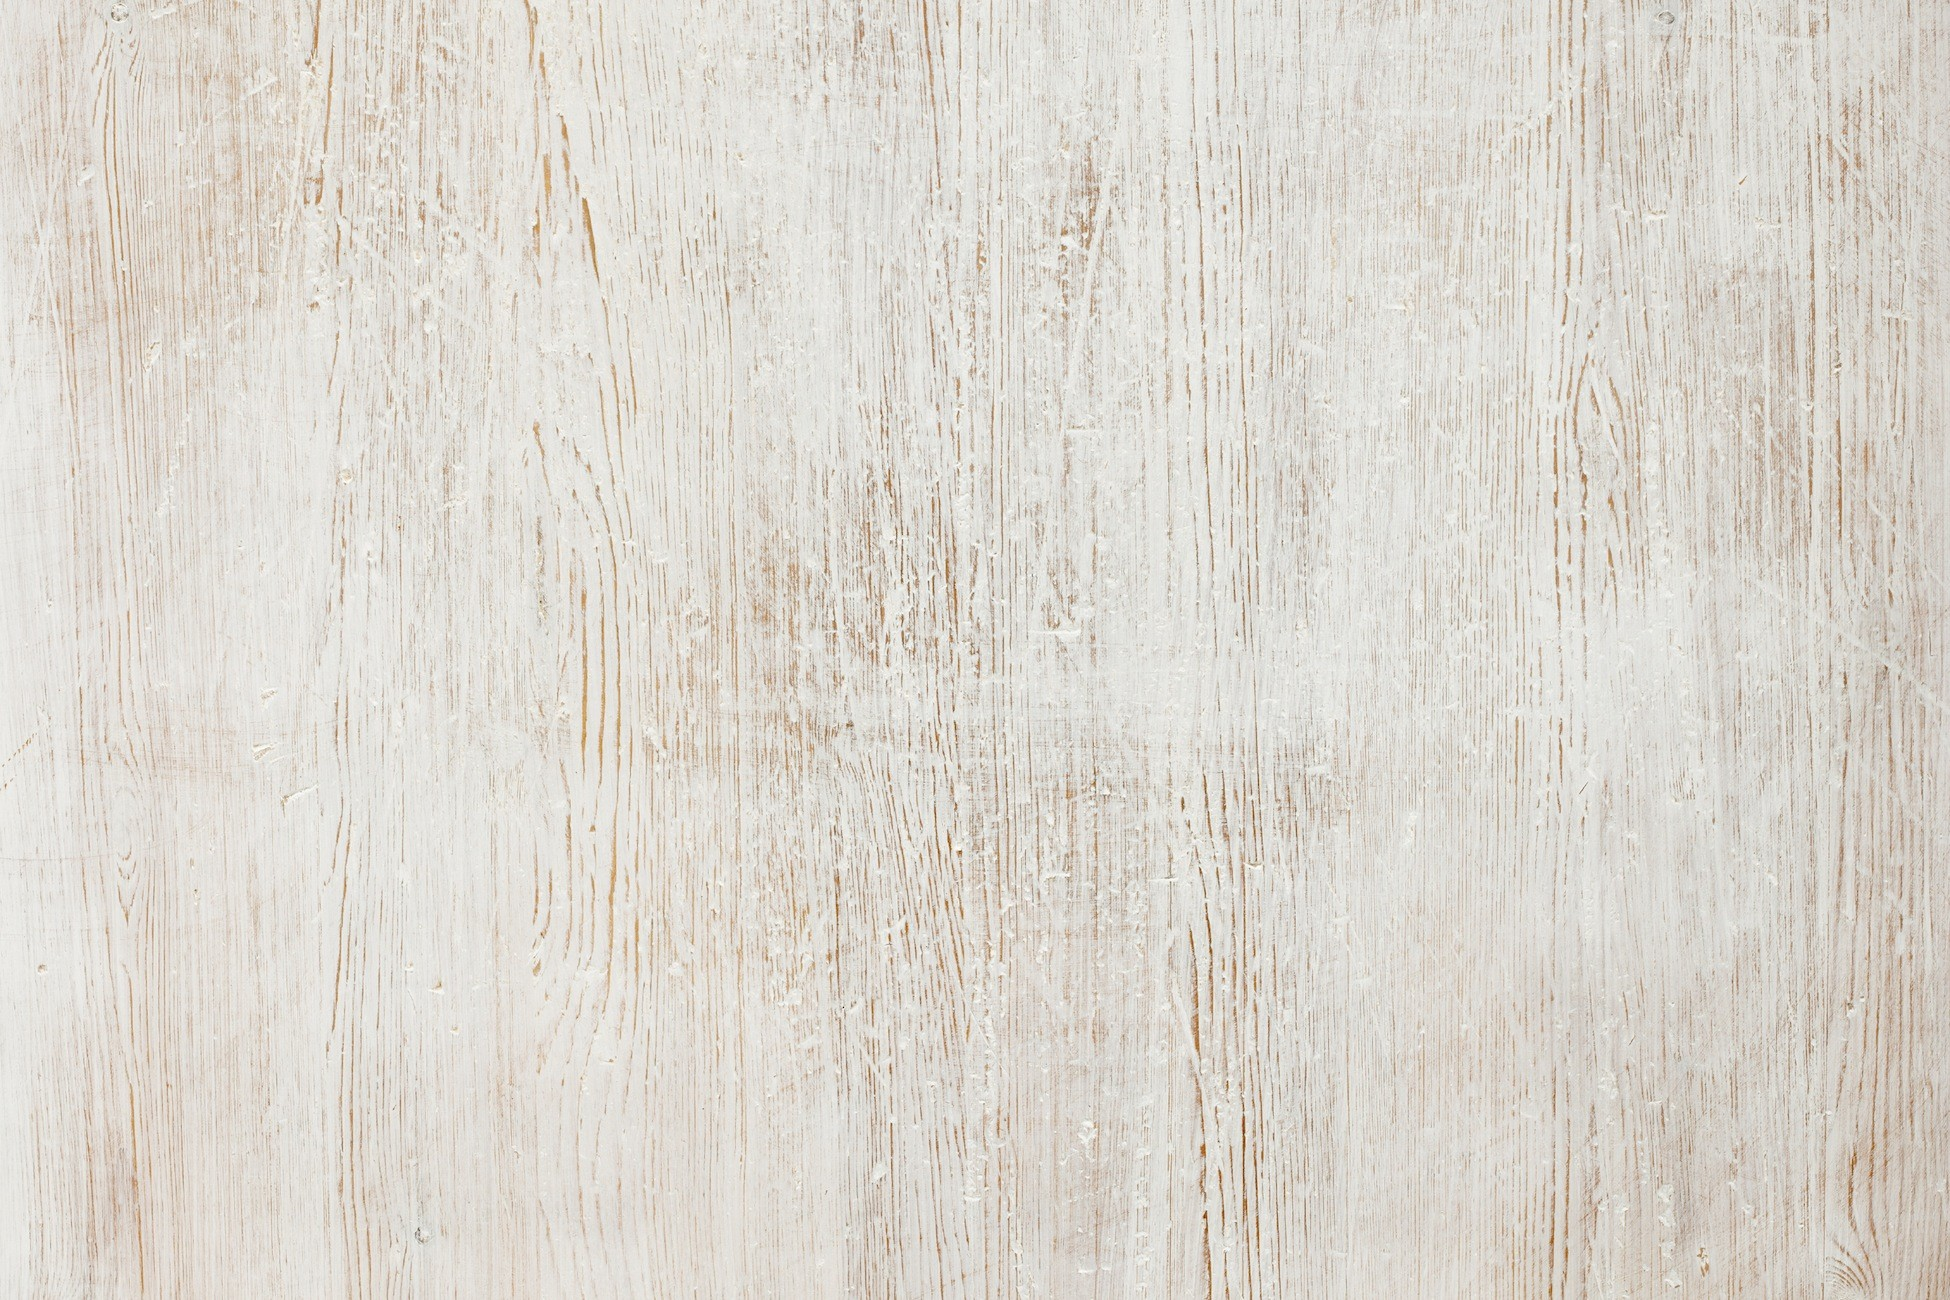 White Wood background ·① Download free beautiful High ...